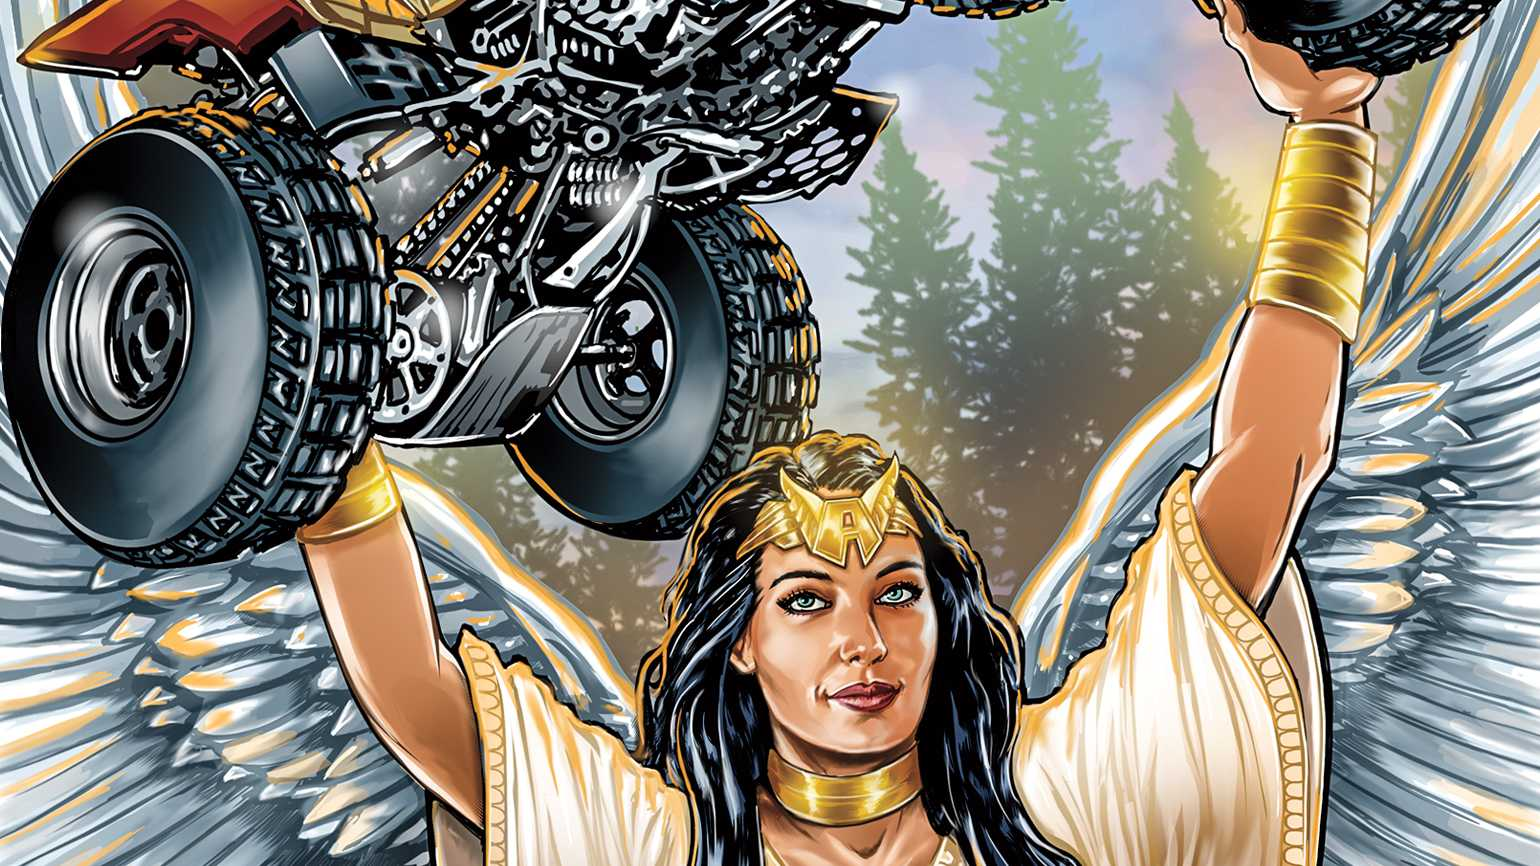 An angel holding a 4-wheeler above her head; Illustration by Kirk Manley